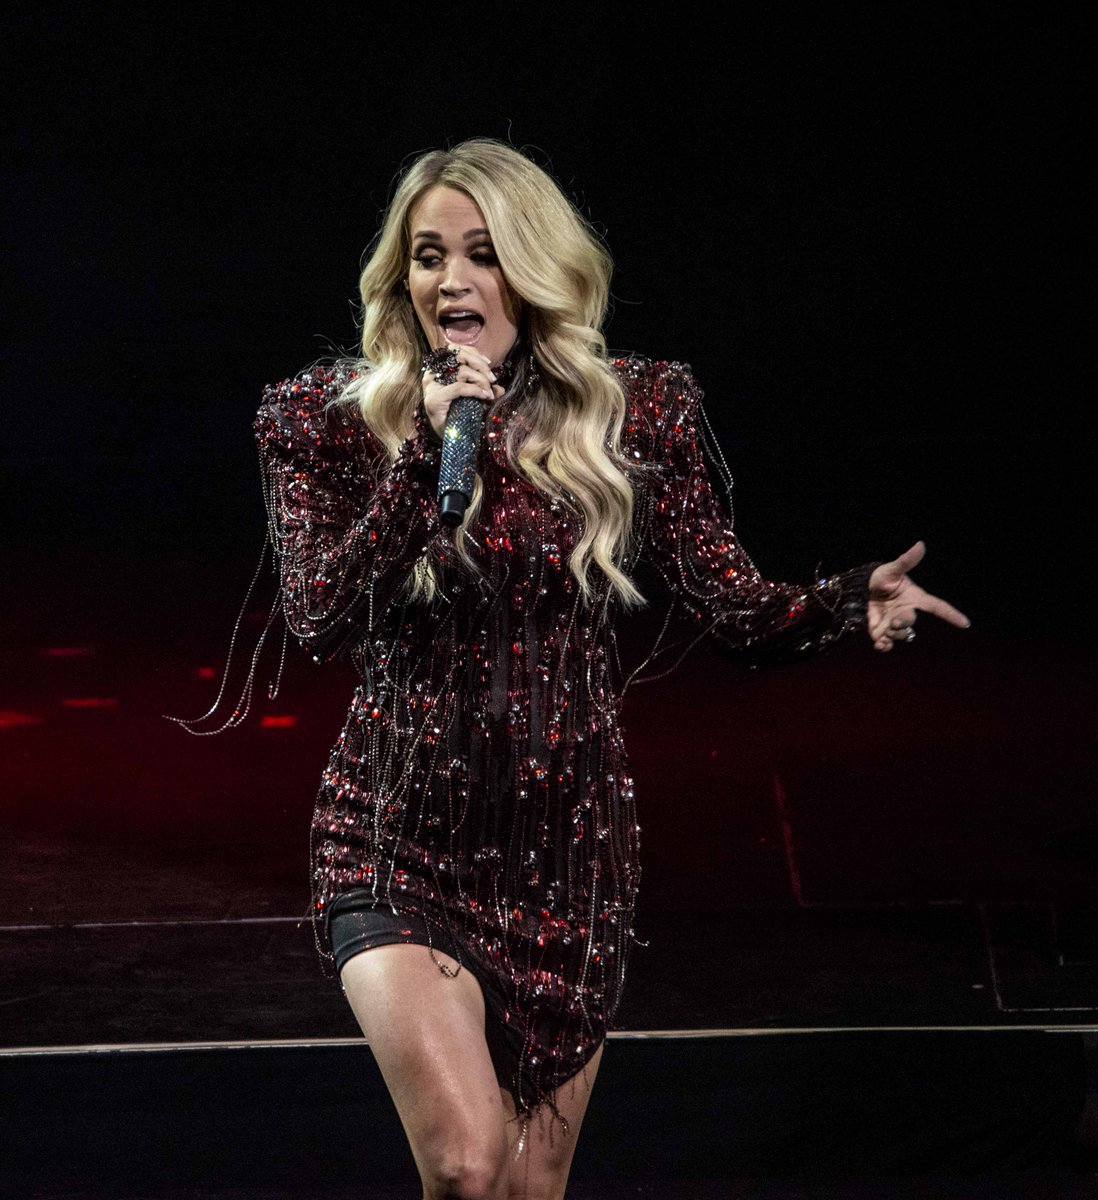 Free pictures of carrie underwood butt sex video and